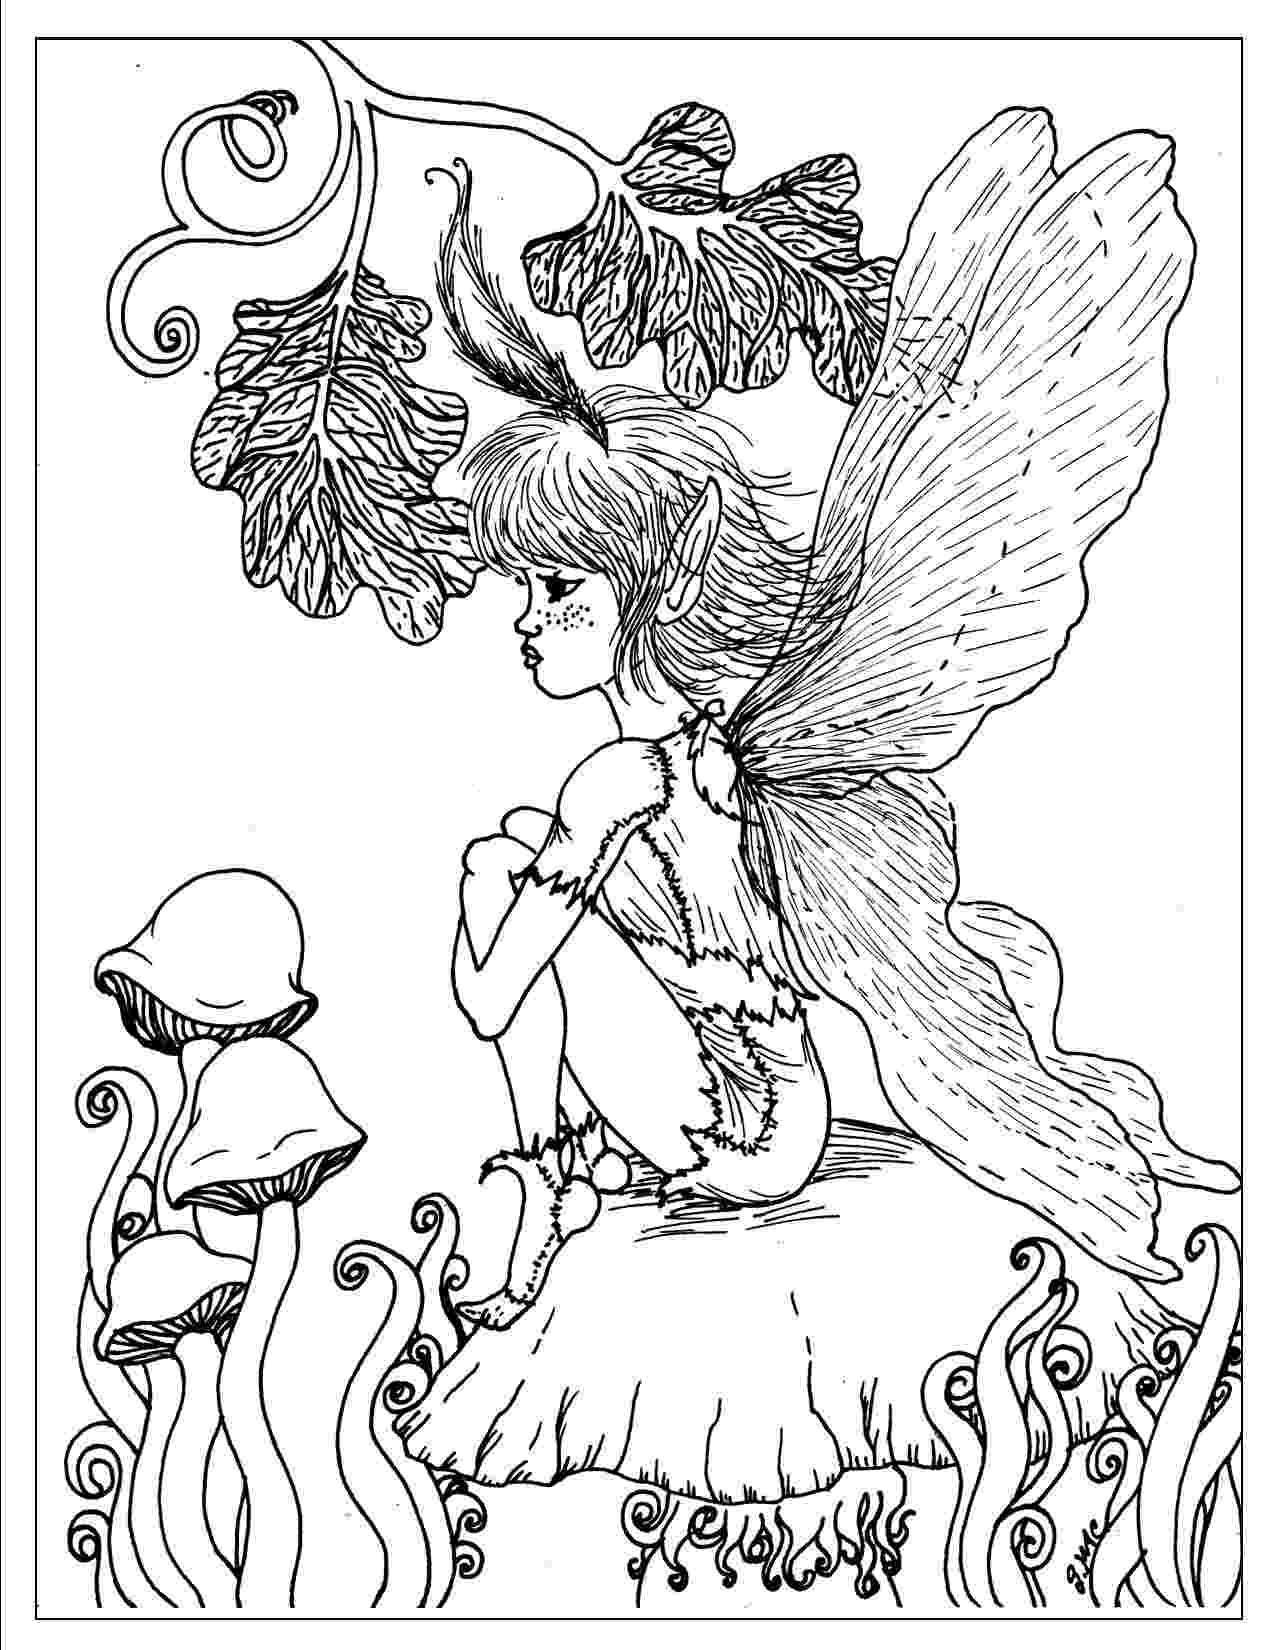 coloring pages fantasy fantasy coloring pages to download and print for free coloring pages fantasy